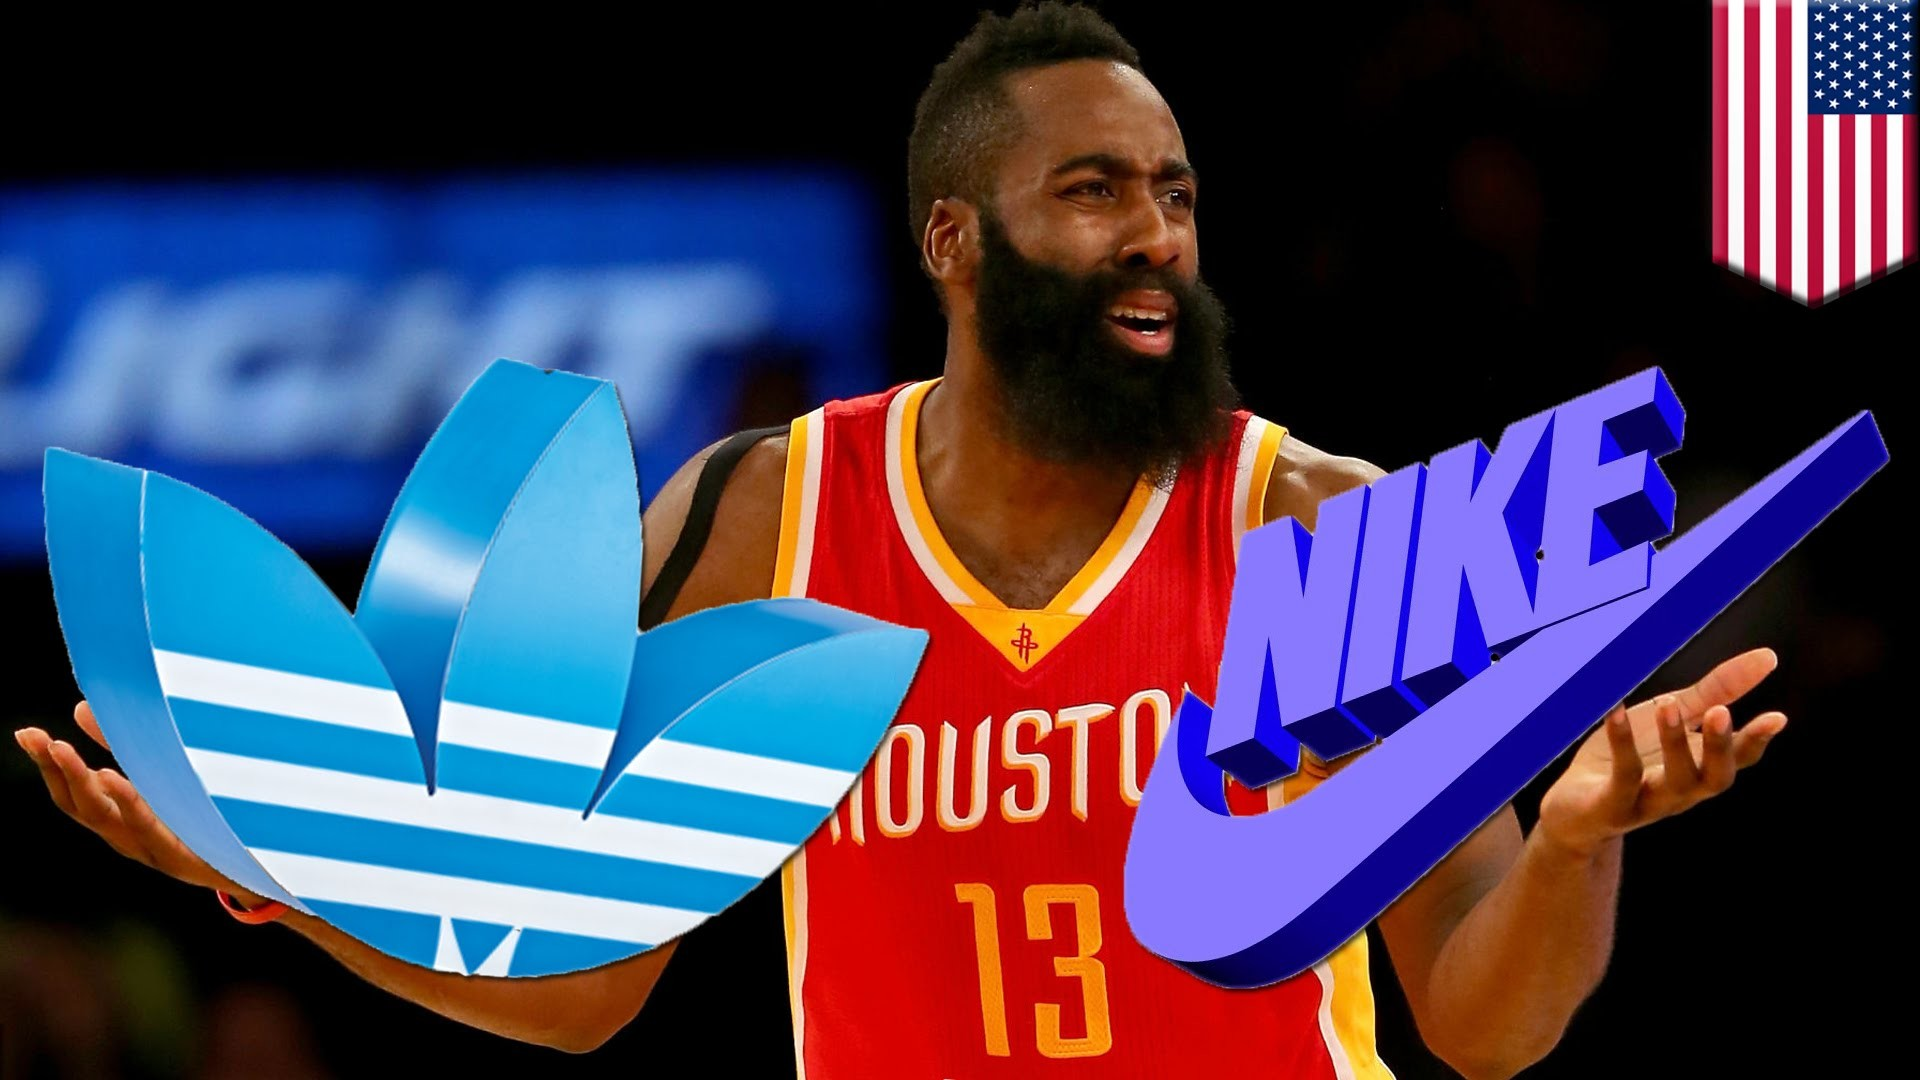 James Harden Adidas deal: The Beard offered $200 million for sneaker  contract – YouTube